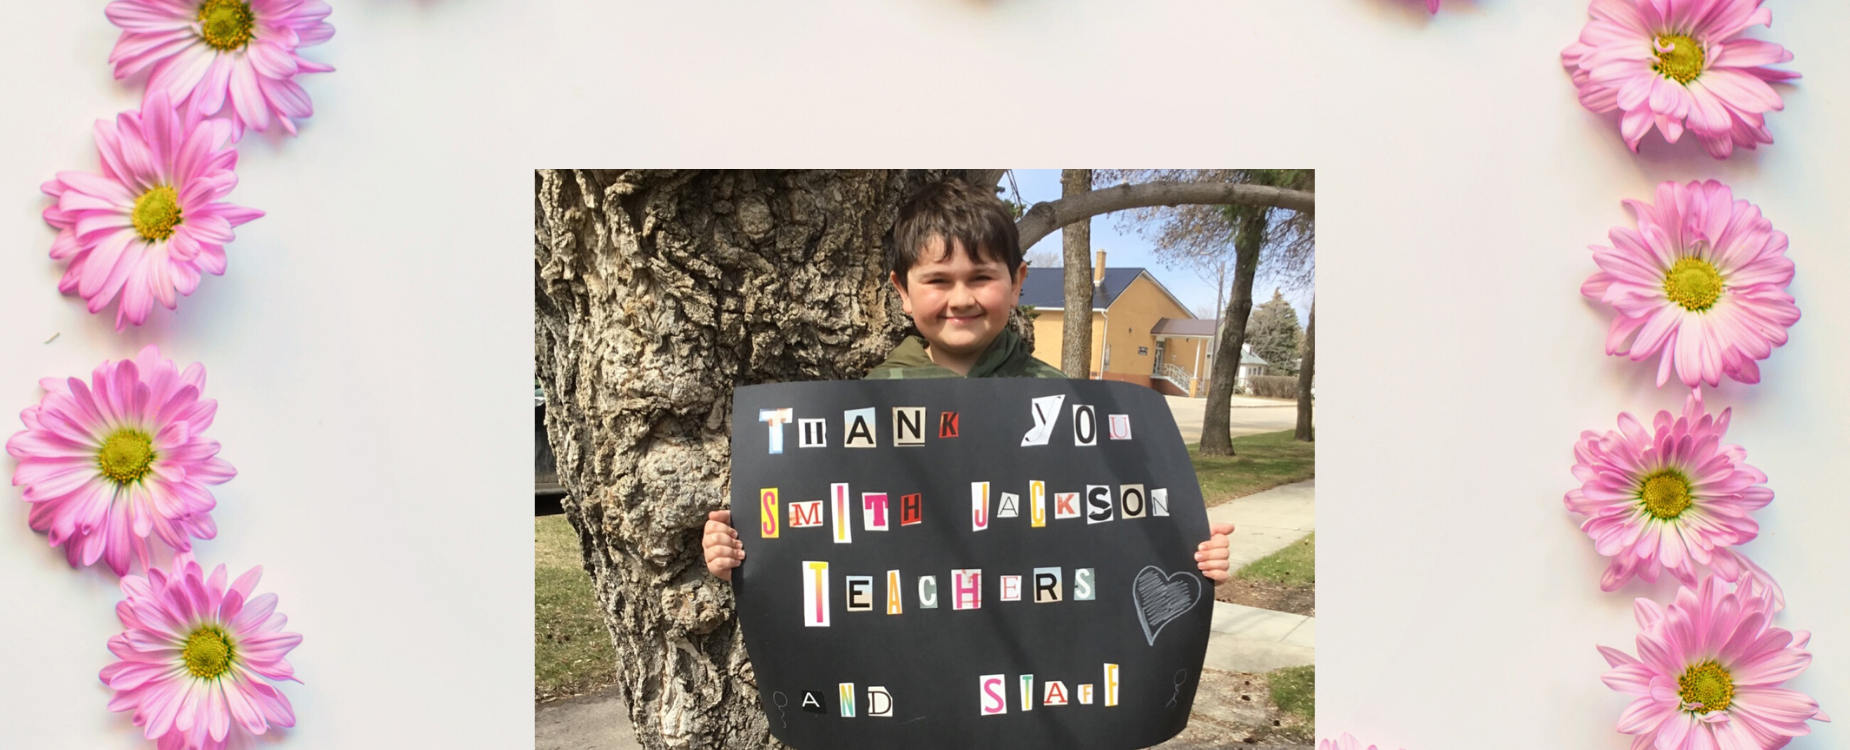 Boy holding thank you sign